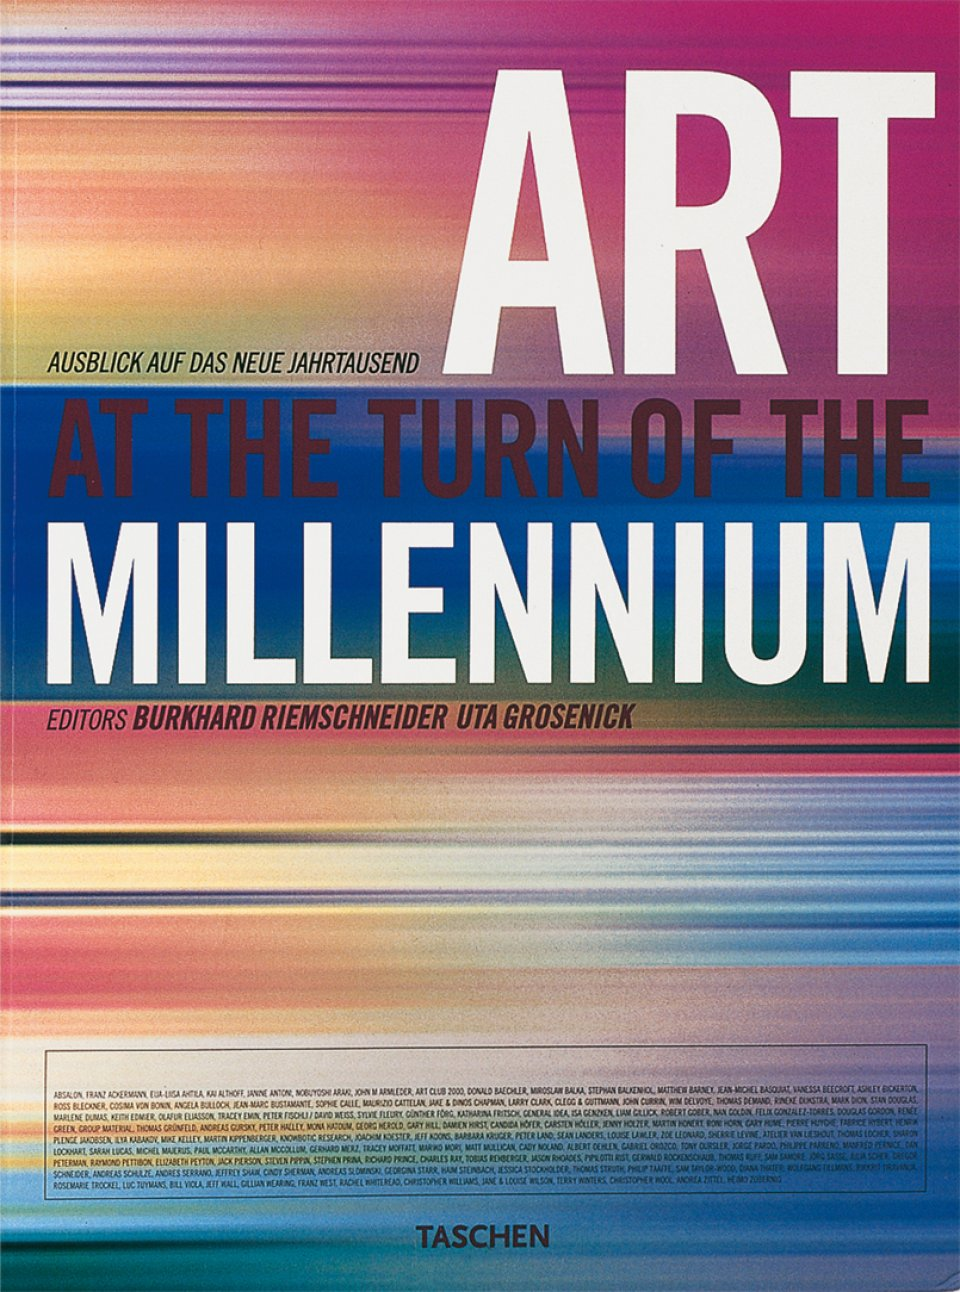 Art at the Turn of the Millennium de Burkhard Riemschneider. Éditions TASCHEN